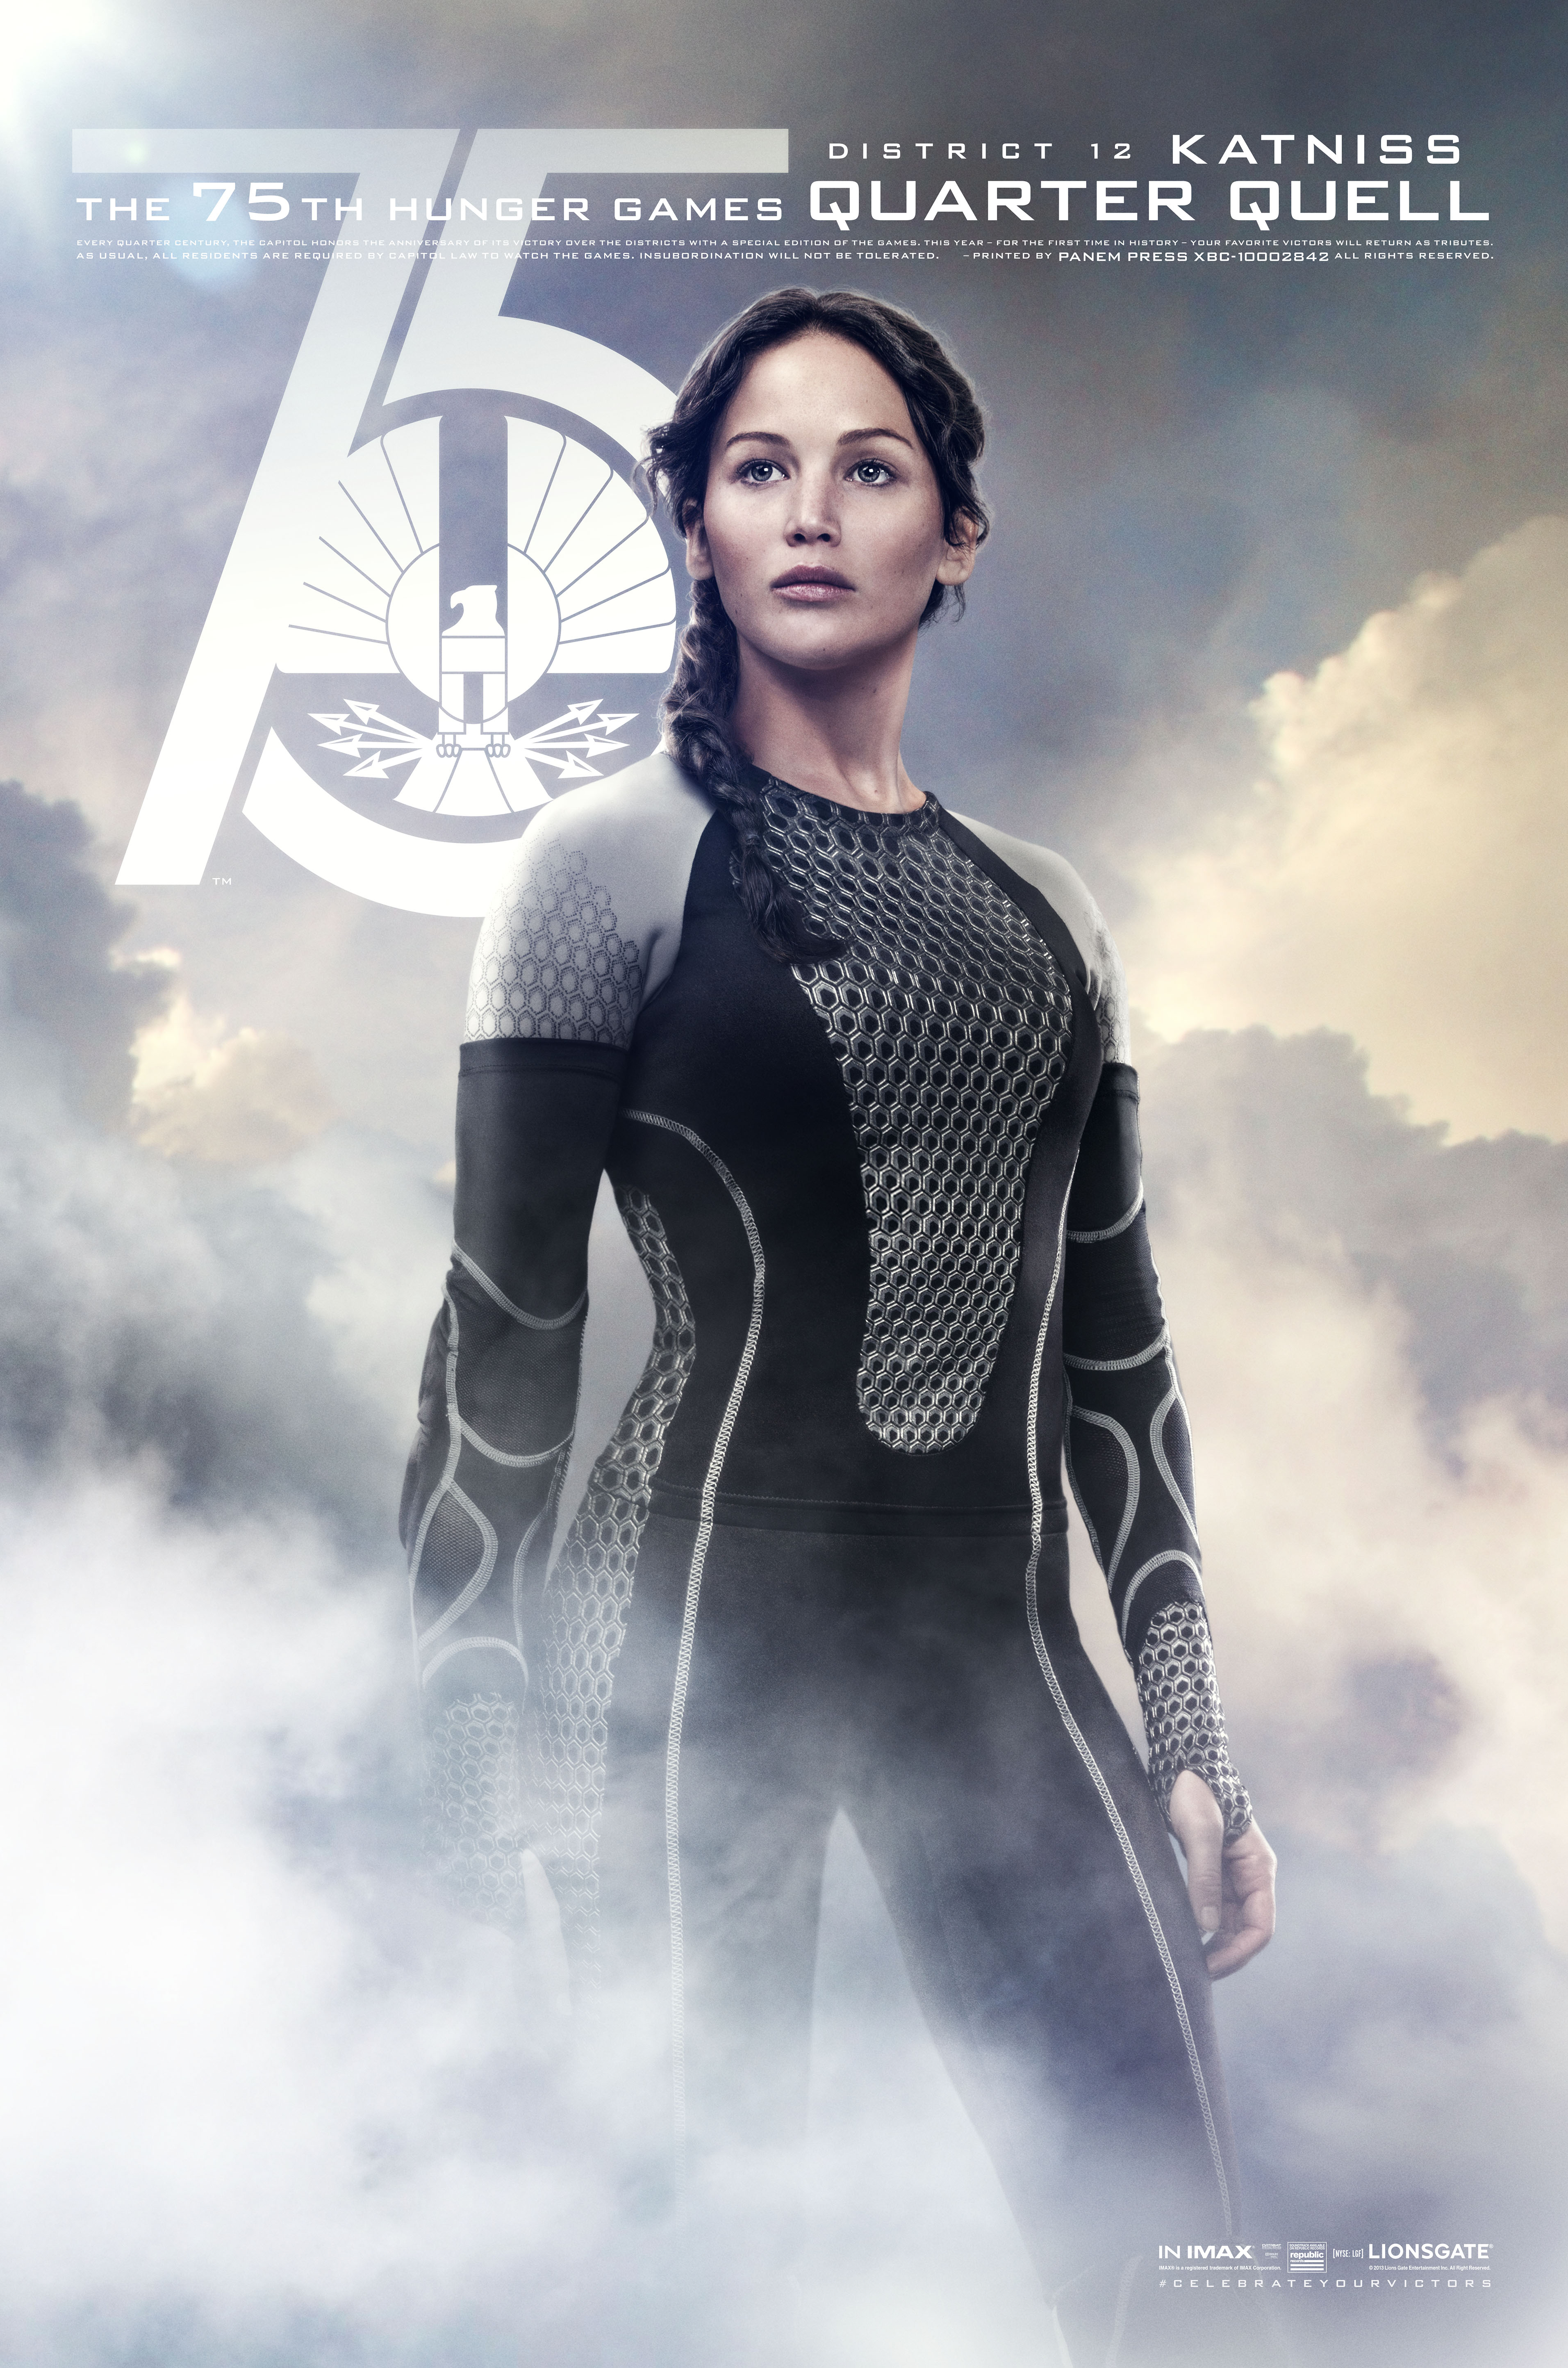 Katniss Quarter Quell Poster